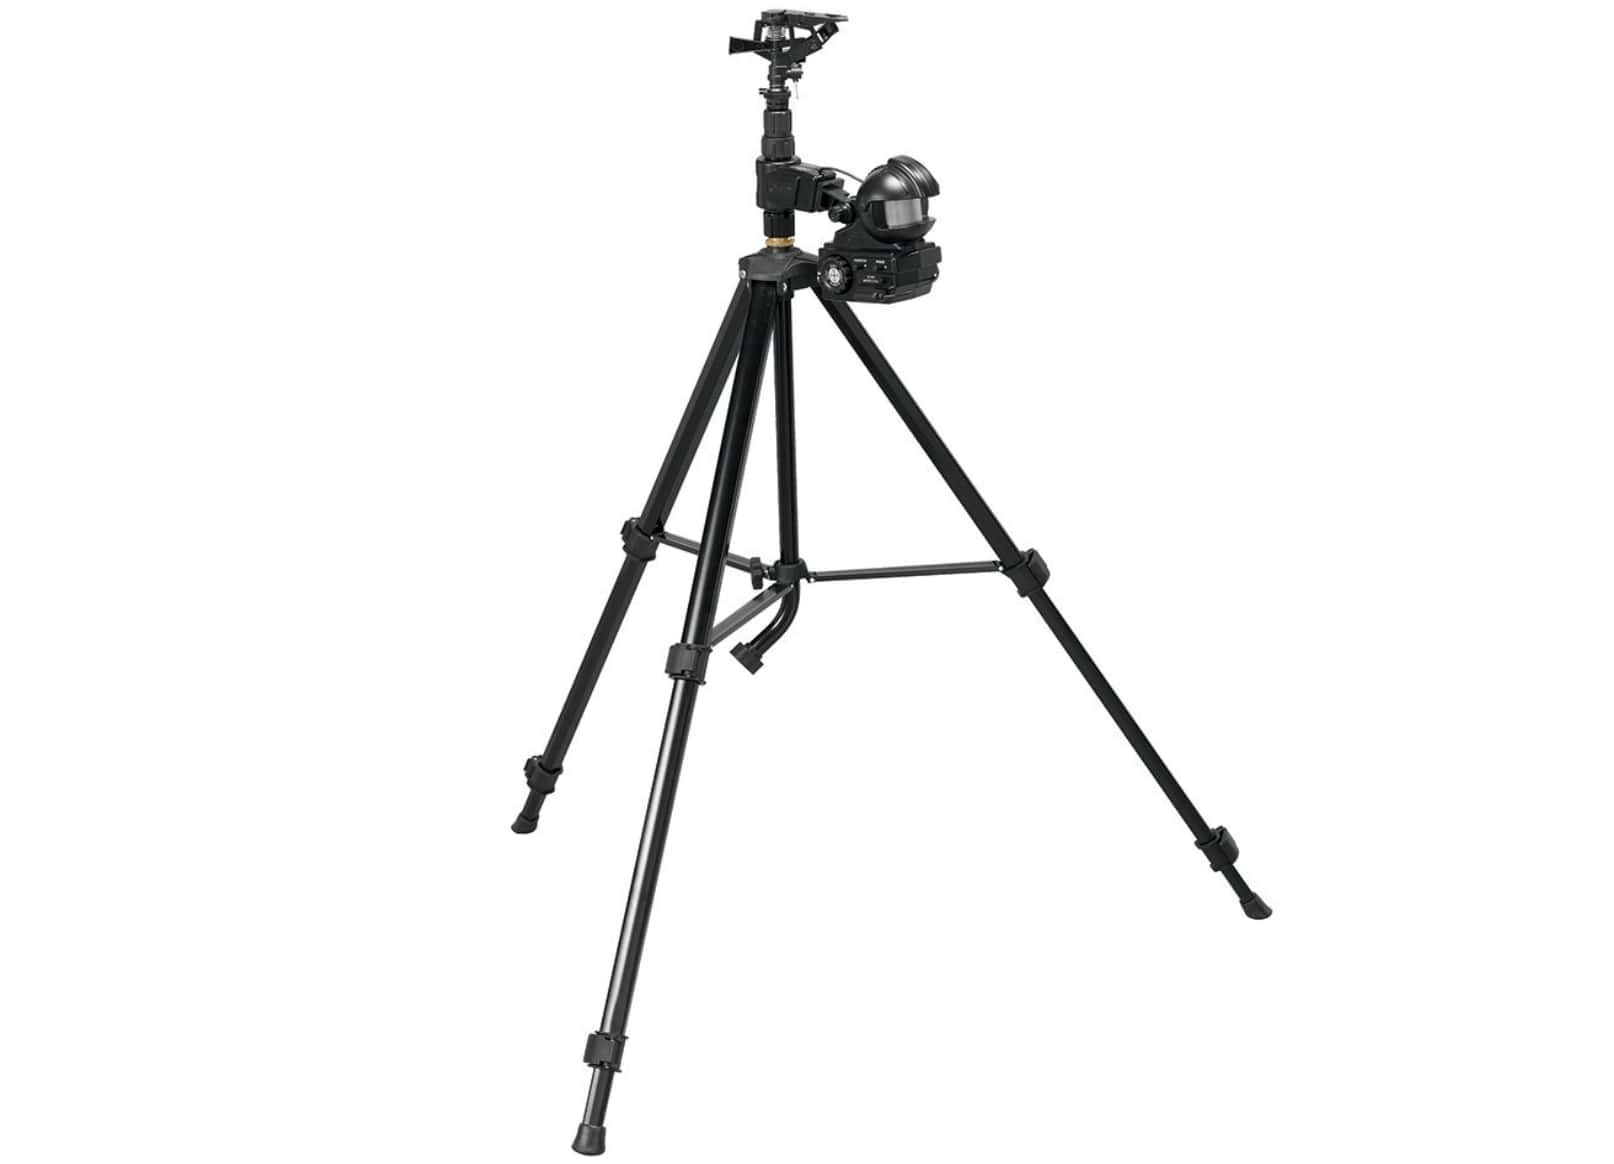 Top 5 Best Tripod Lawn Sprinklers For Your Garden